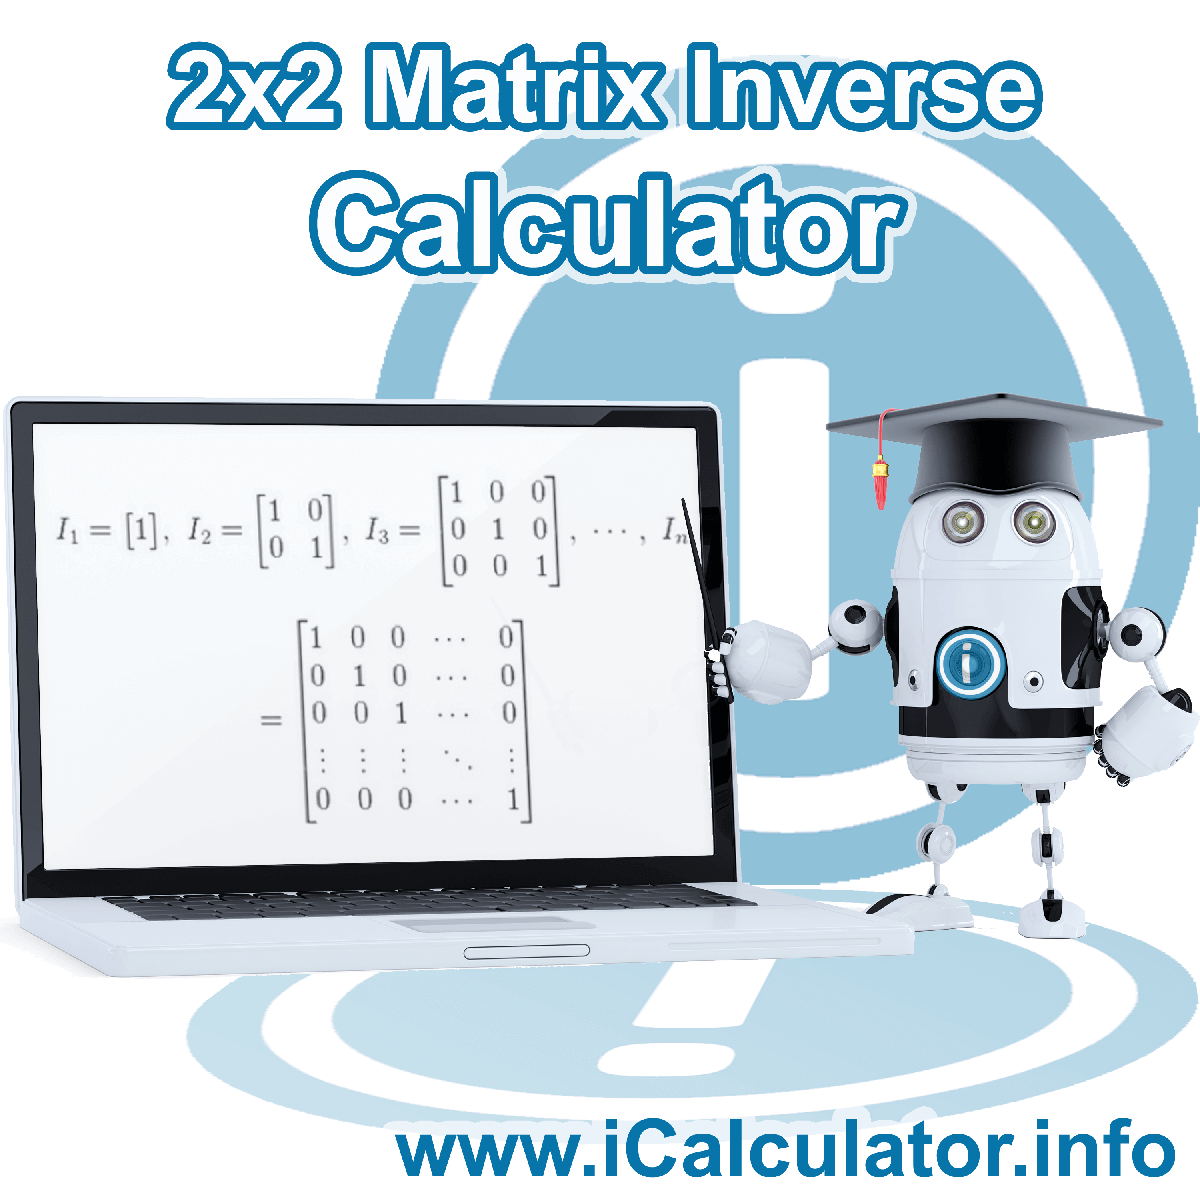 2x2 Matrix Inverse Calculator. This image shows the properties and Matrix formula for the 2x2 Matrix Inverse Calculator